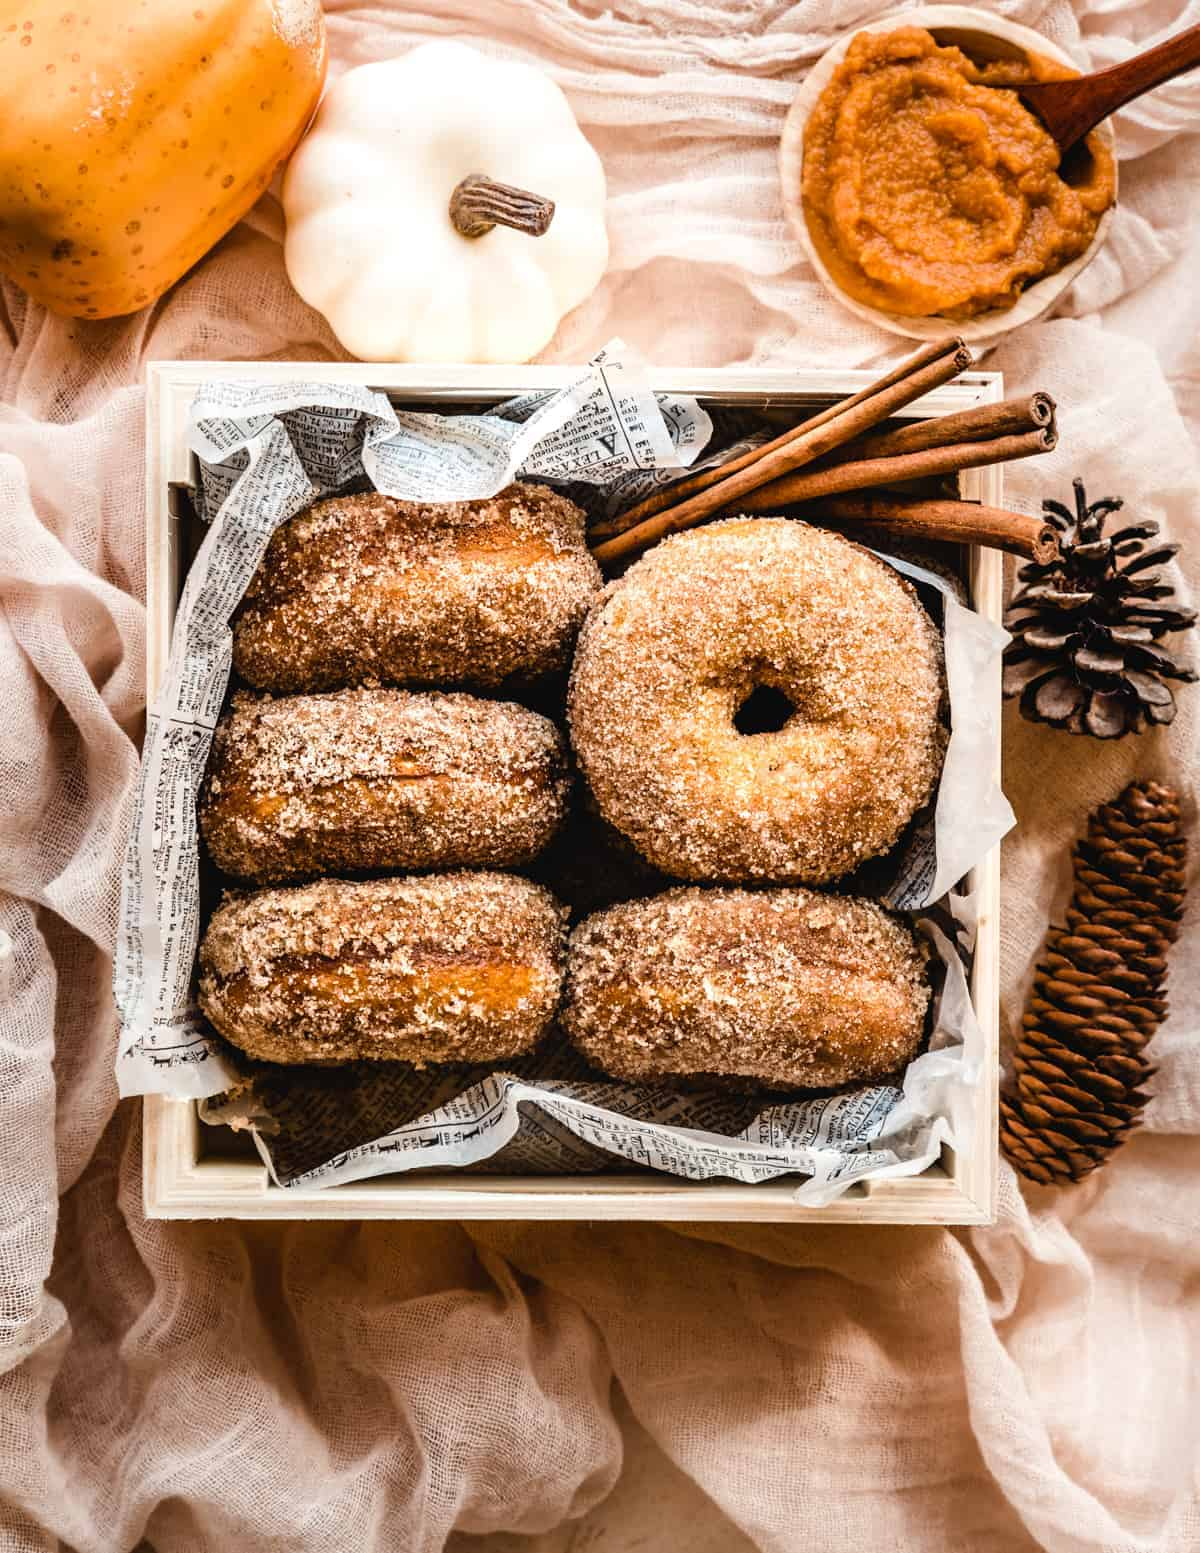 Make a batch of these baked pumpkin donuts to share at the pumpkin patch.